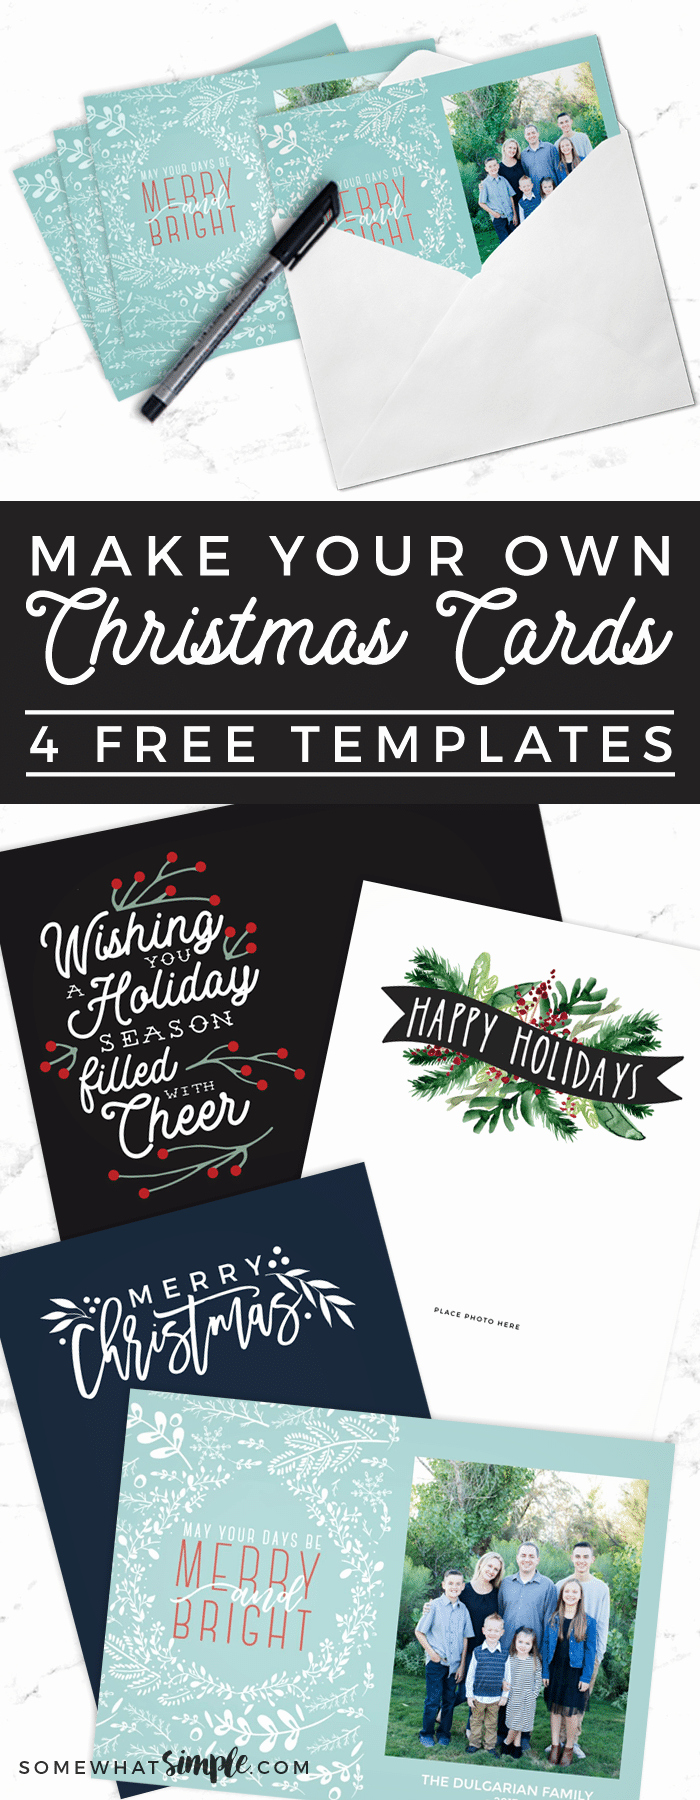 Free Photo Christmas Card Templates Lovely Make Your Own Christmas Cards for Free somewhat